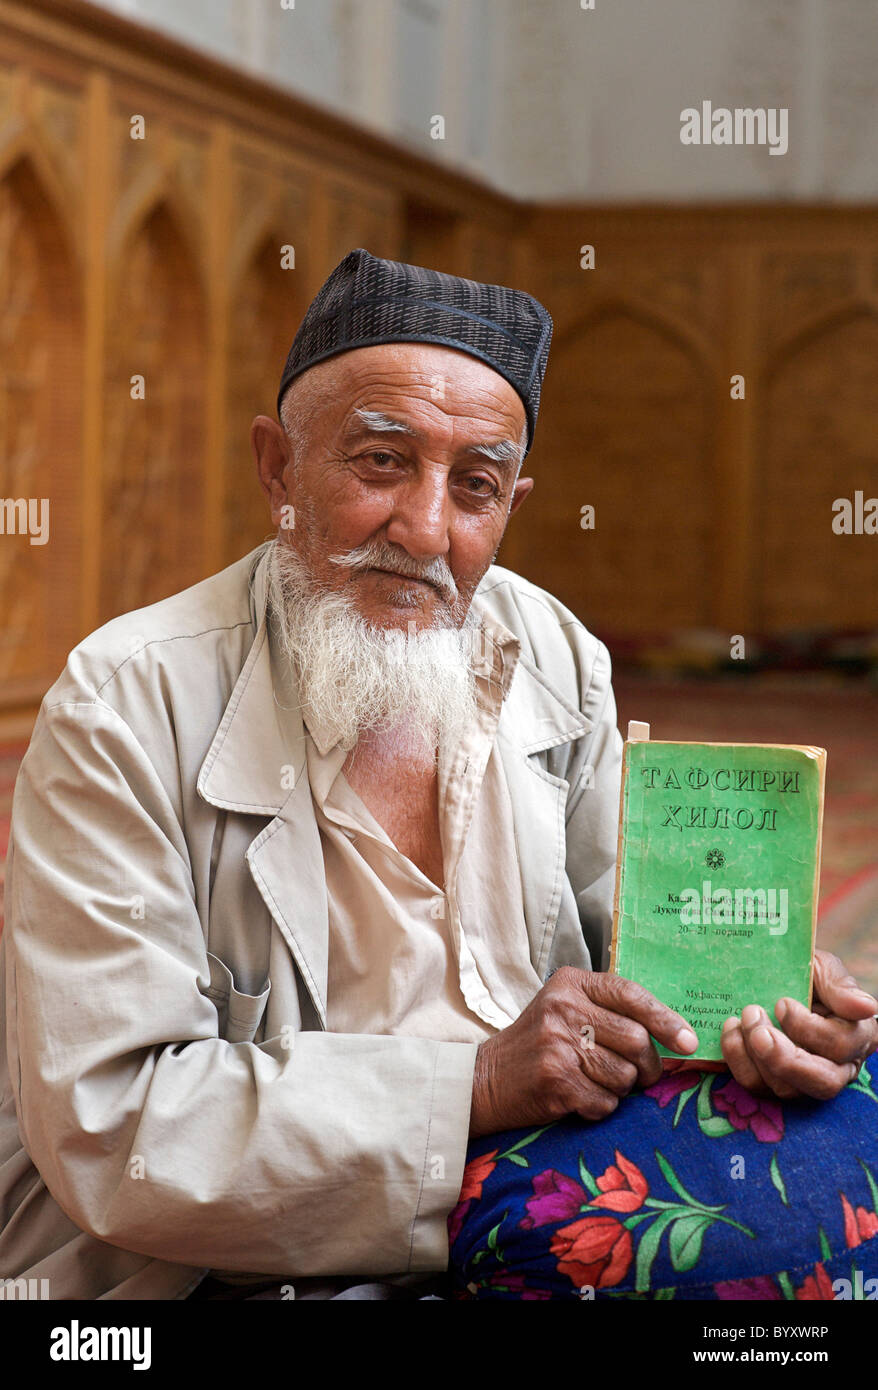 Portrait of  elderly muslim man. The Muezzin at a mosque with a Koran in Cyrillic script, Khiva, Uzbekistan. RELEASED - Stock Image